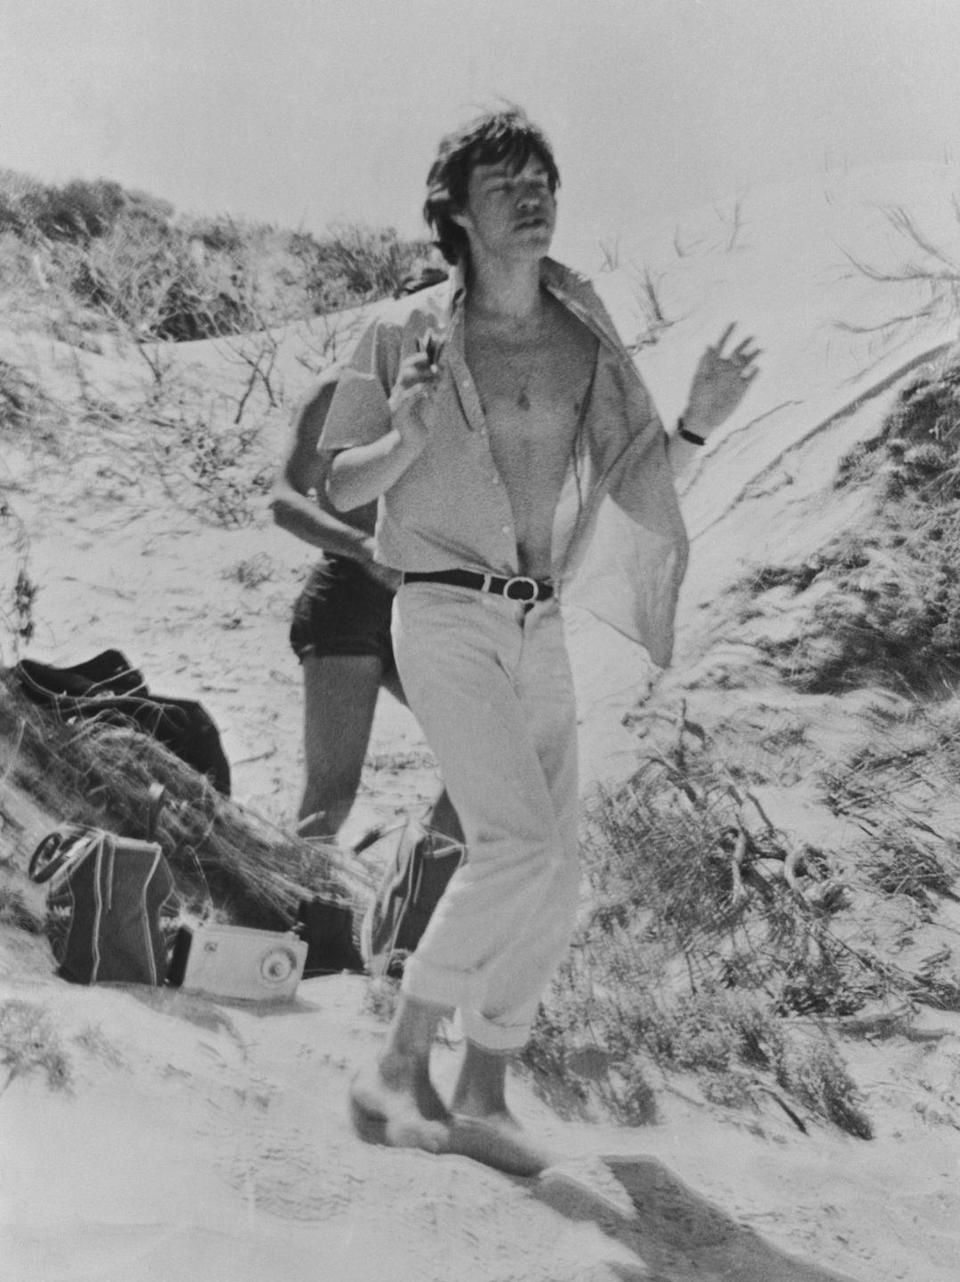 <p>Mick Jagger on an Australian beach in 1965 during a Rolling Stones tour. </p>